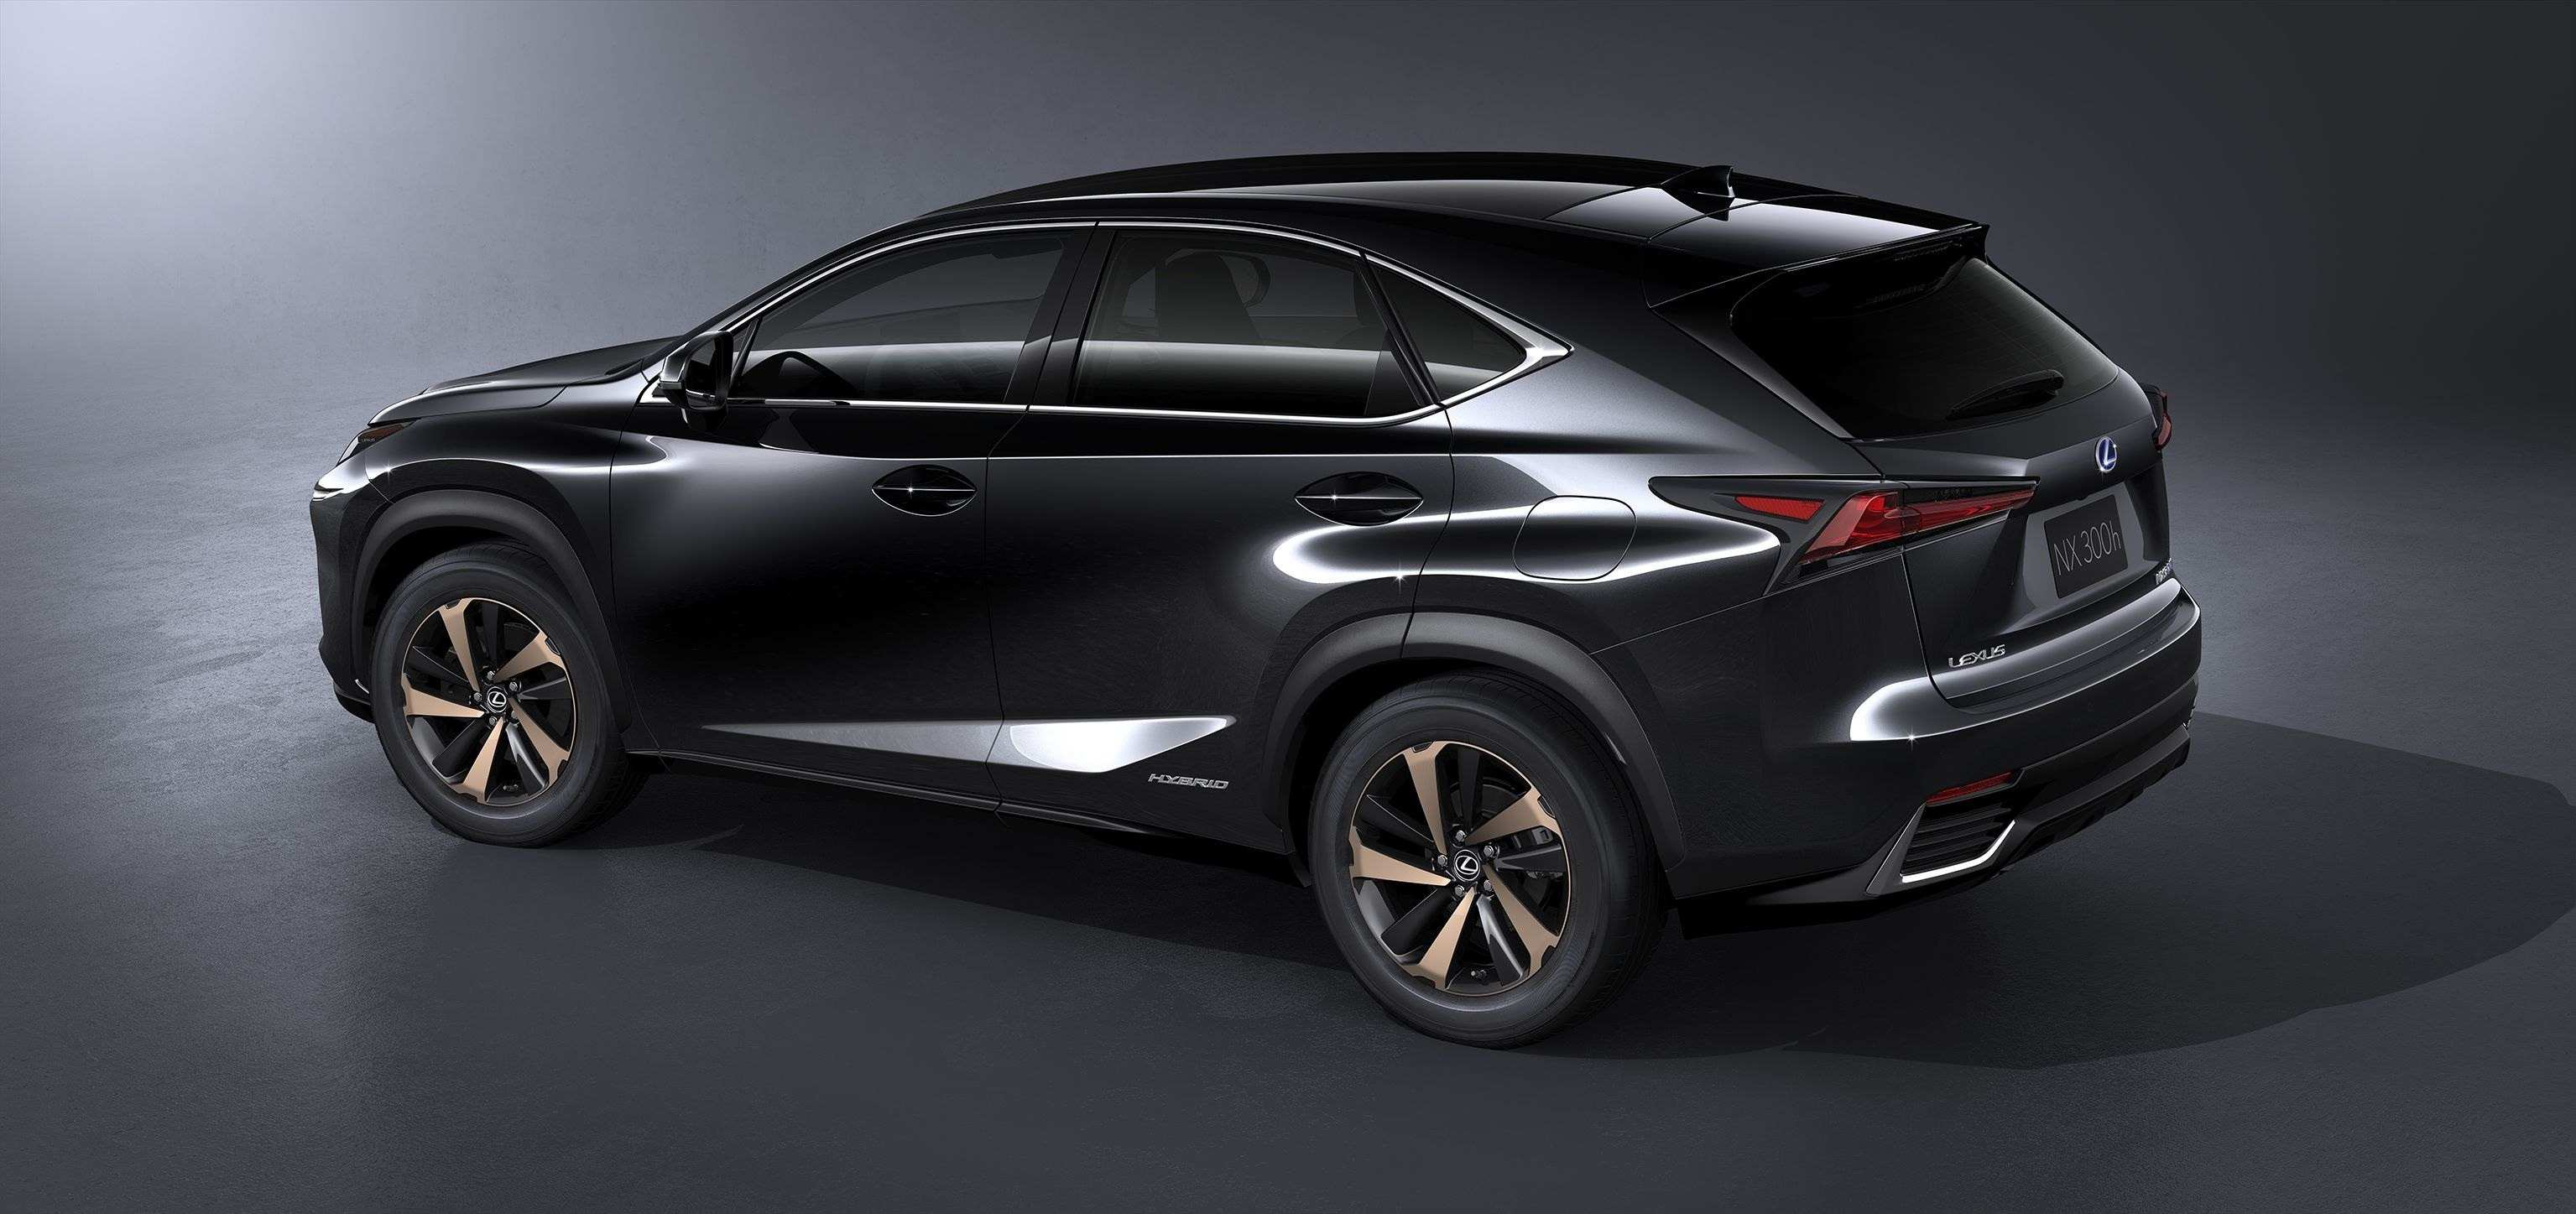 29 The Best 2020 Lexus Rx 350 Pictures Pricing